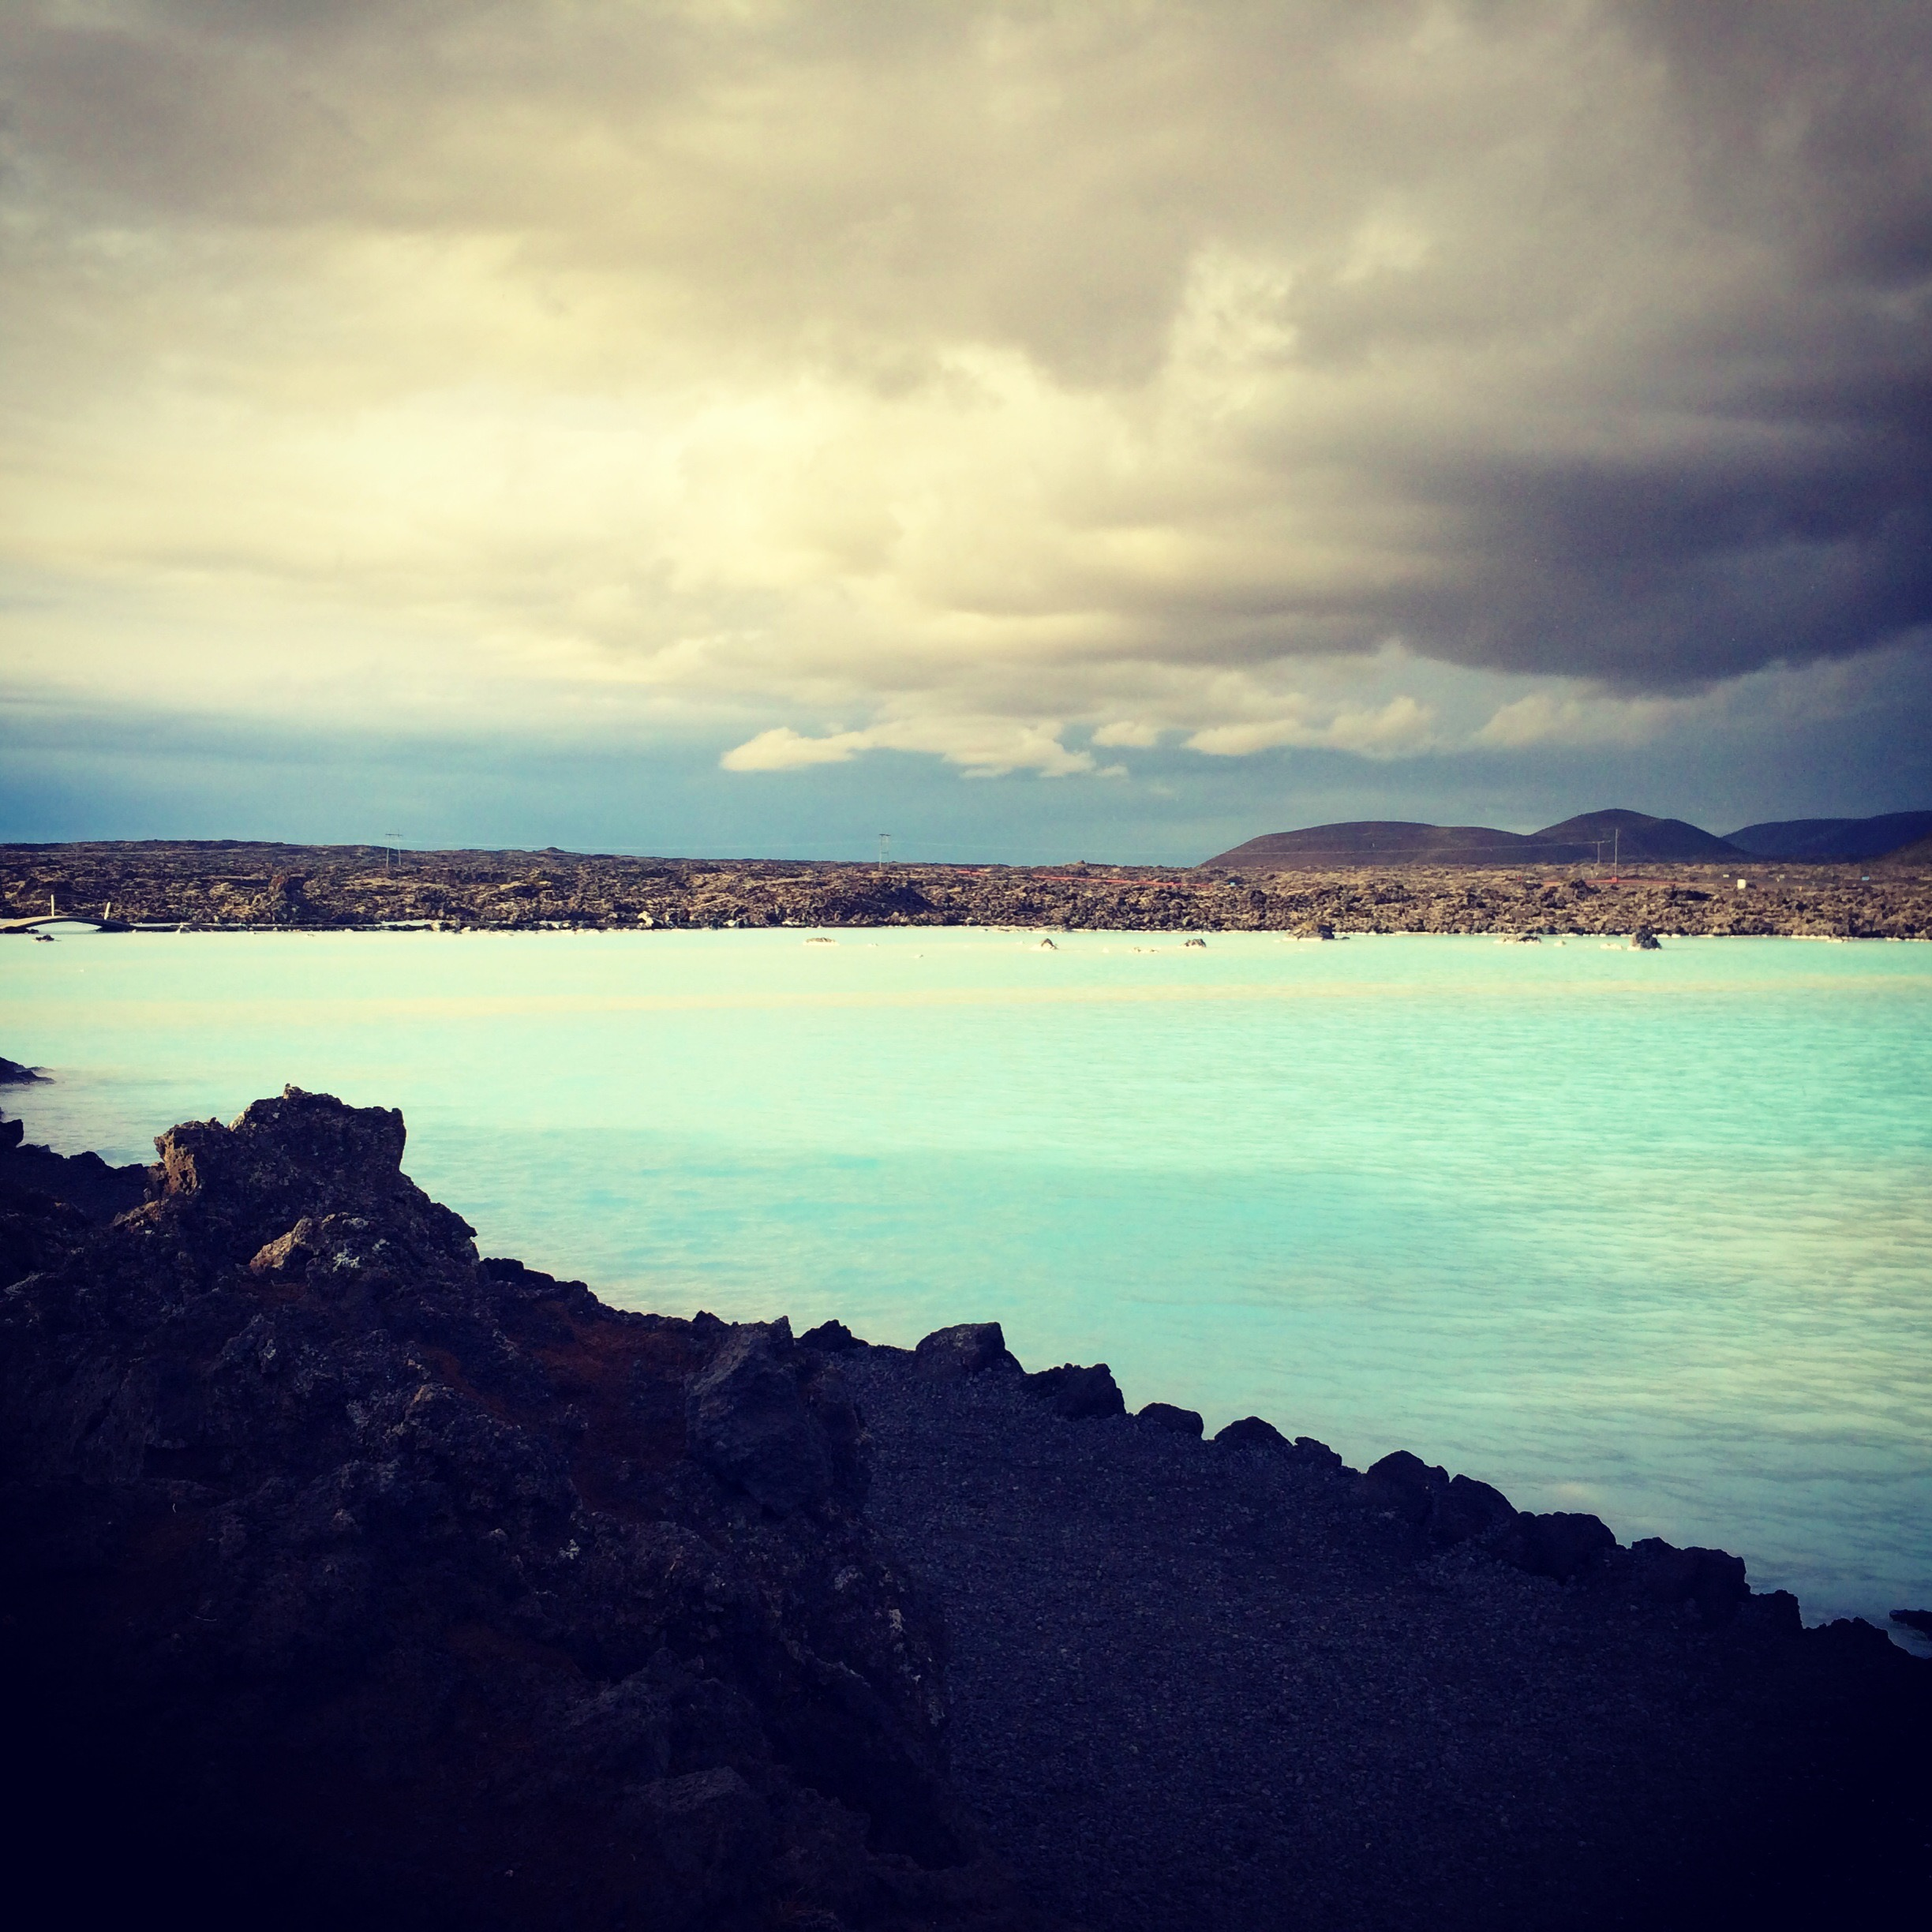 Clouds over the Blue Lagoon, Iceland - 3 Days*